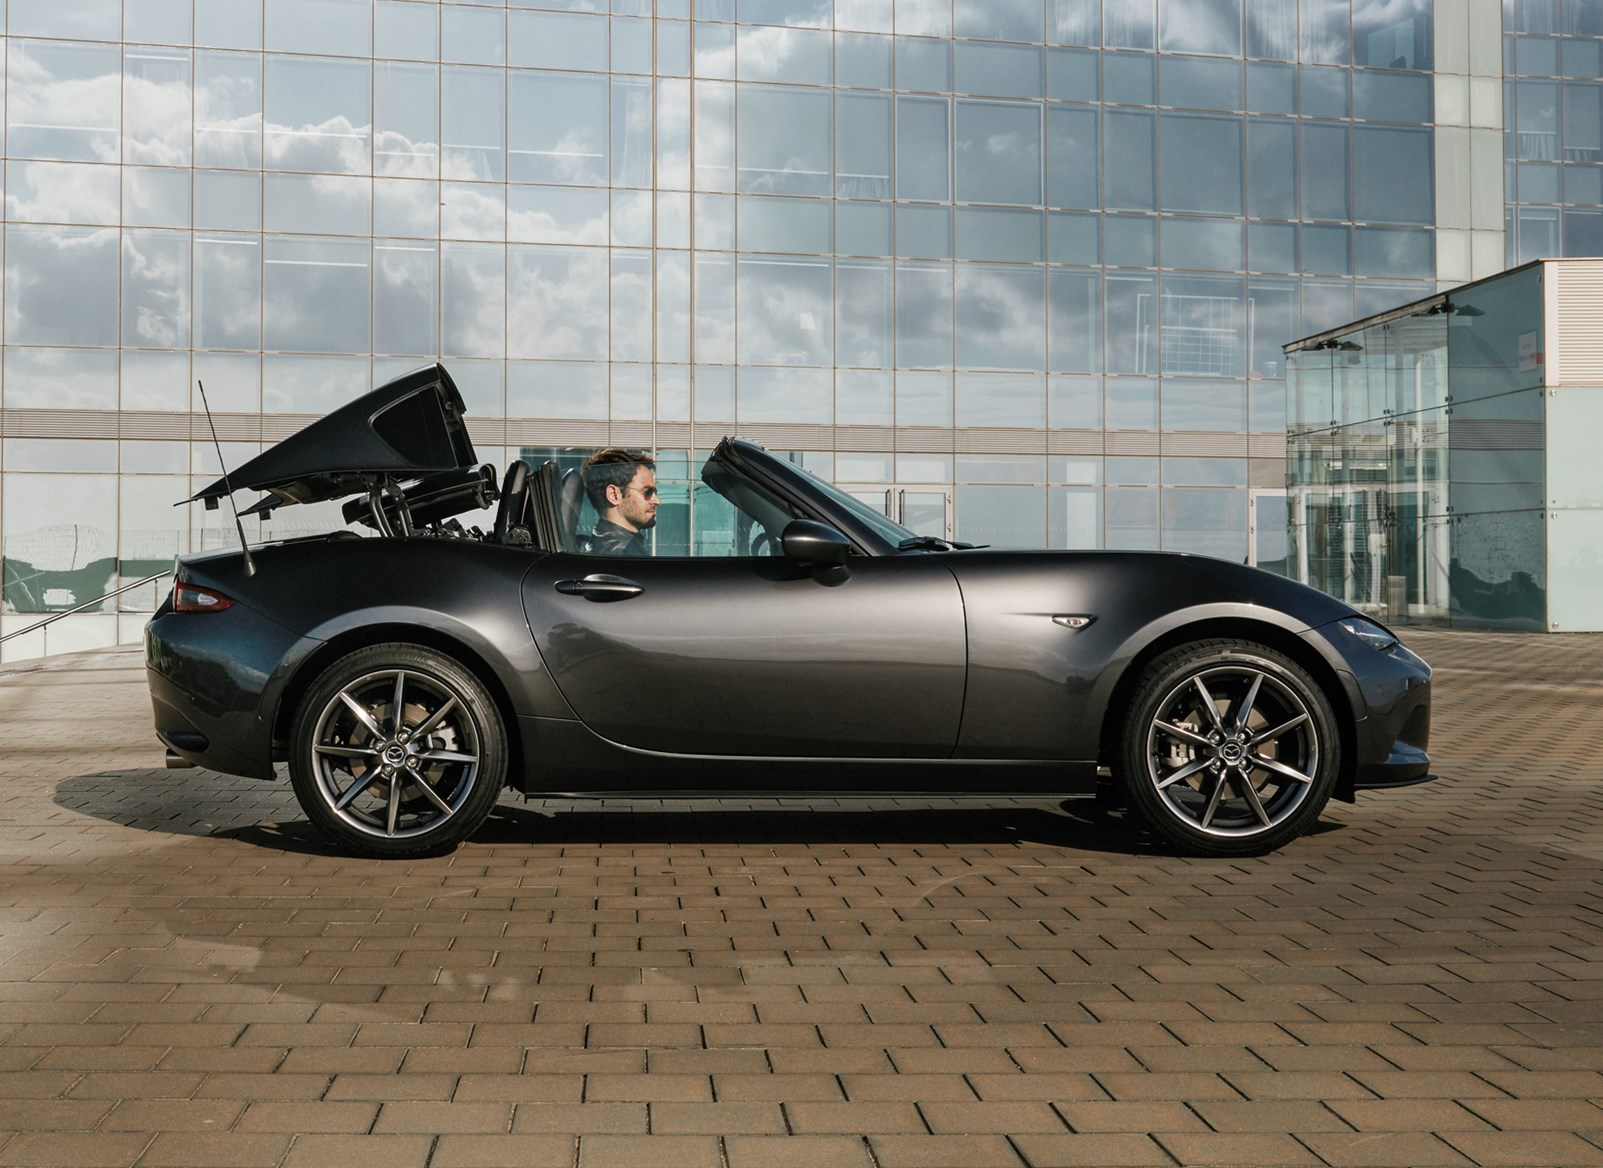 2017 Mx 5 Rf >> Mazda MX-5 RF review | Parkers